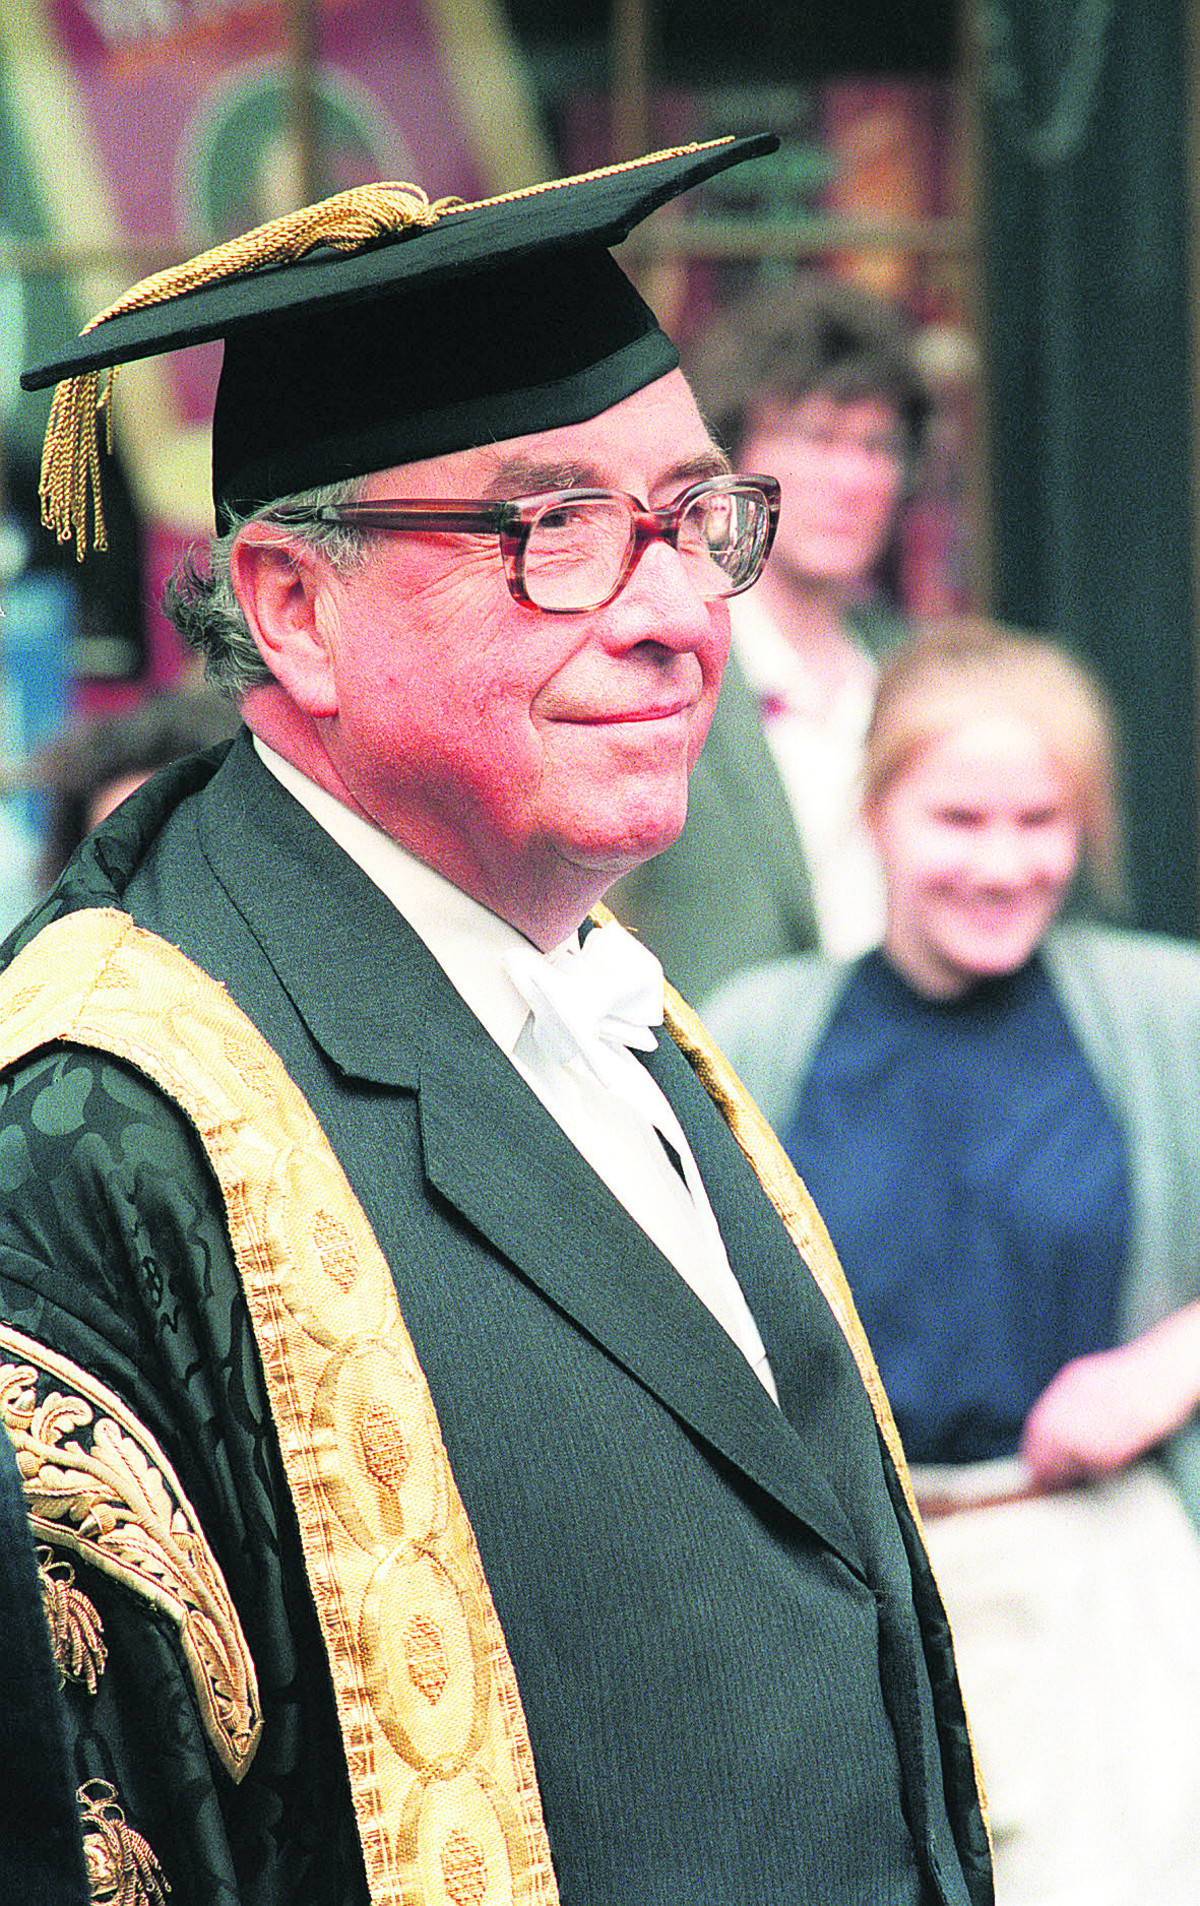 Roy Jenkins at the Encaenia procession at the Sheldonian, Oxford, in June, 1987